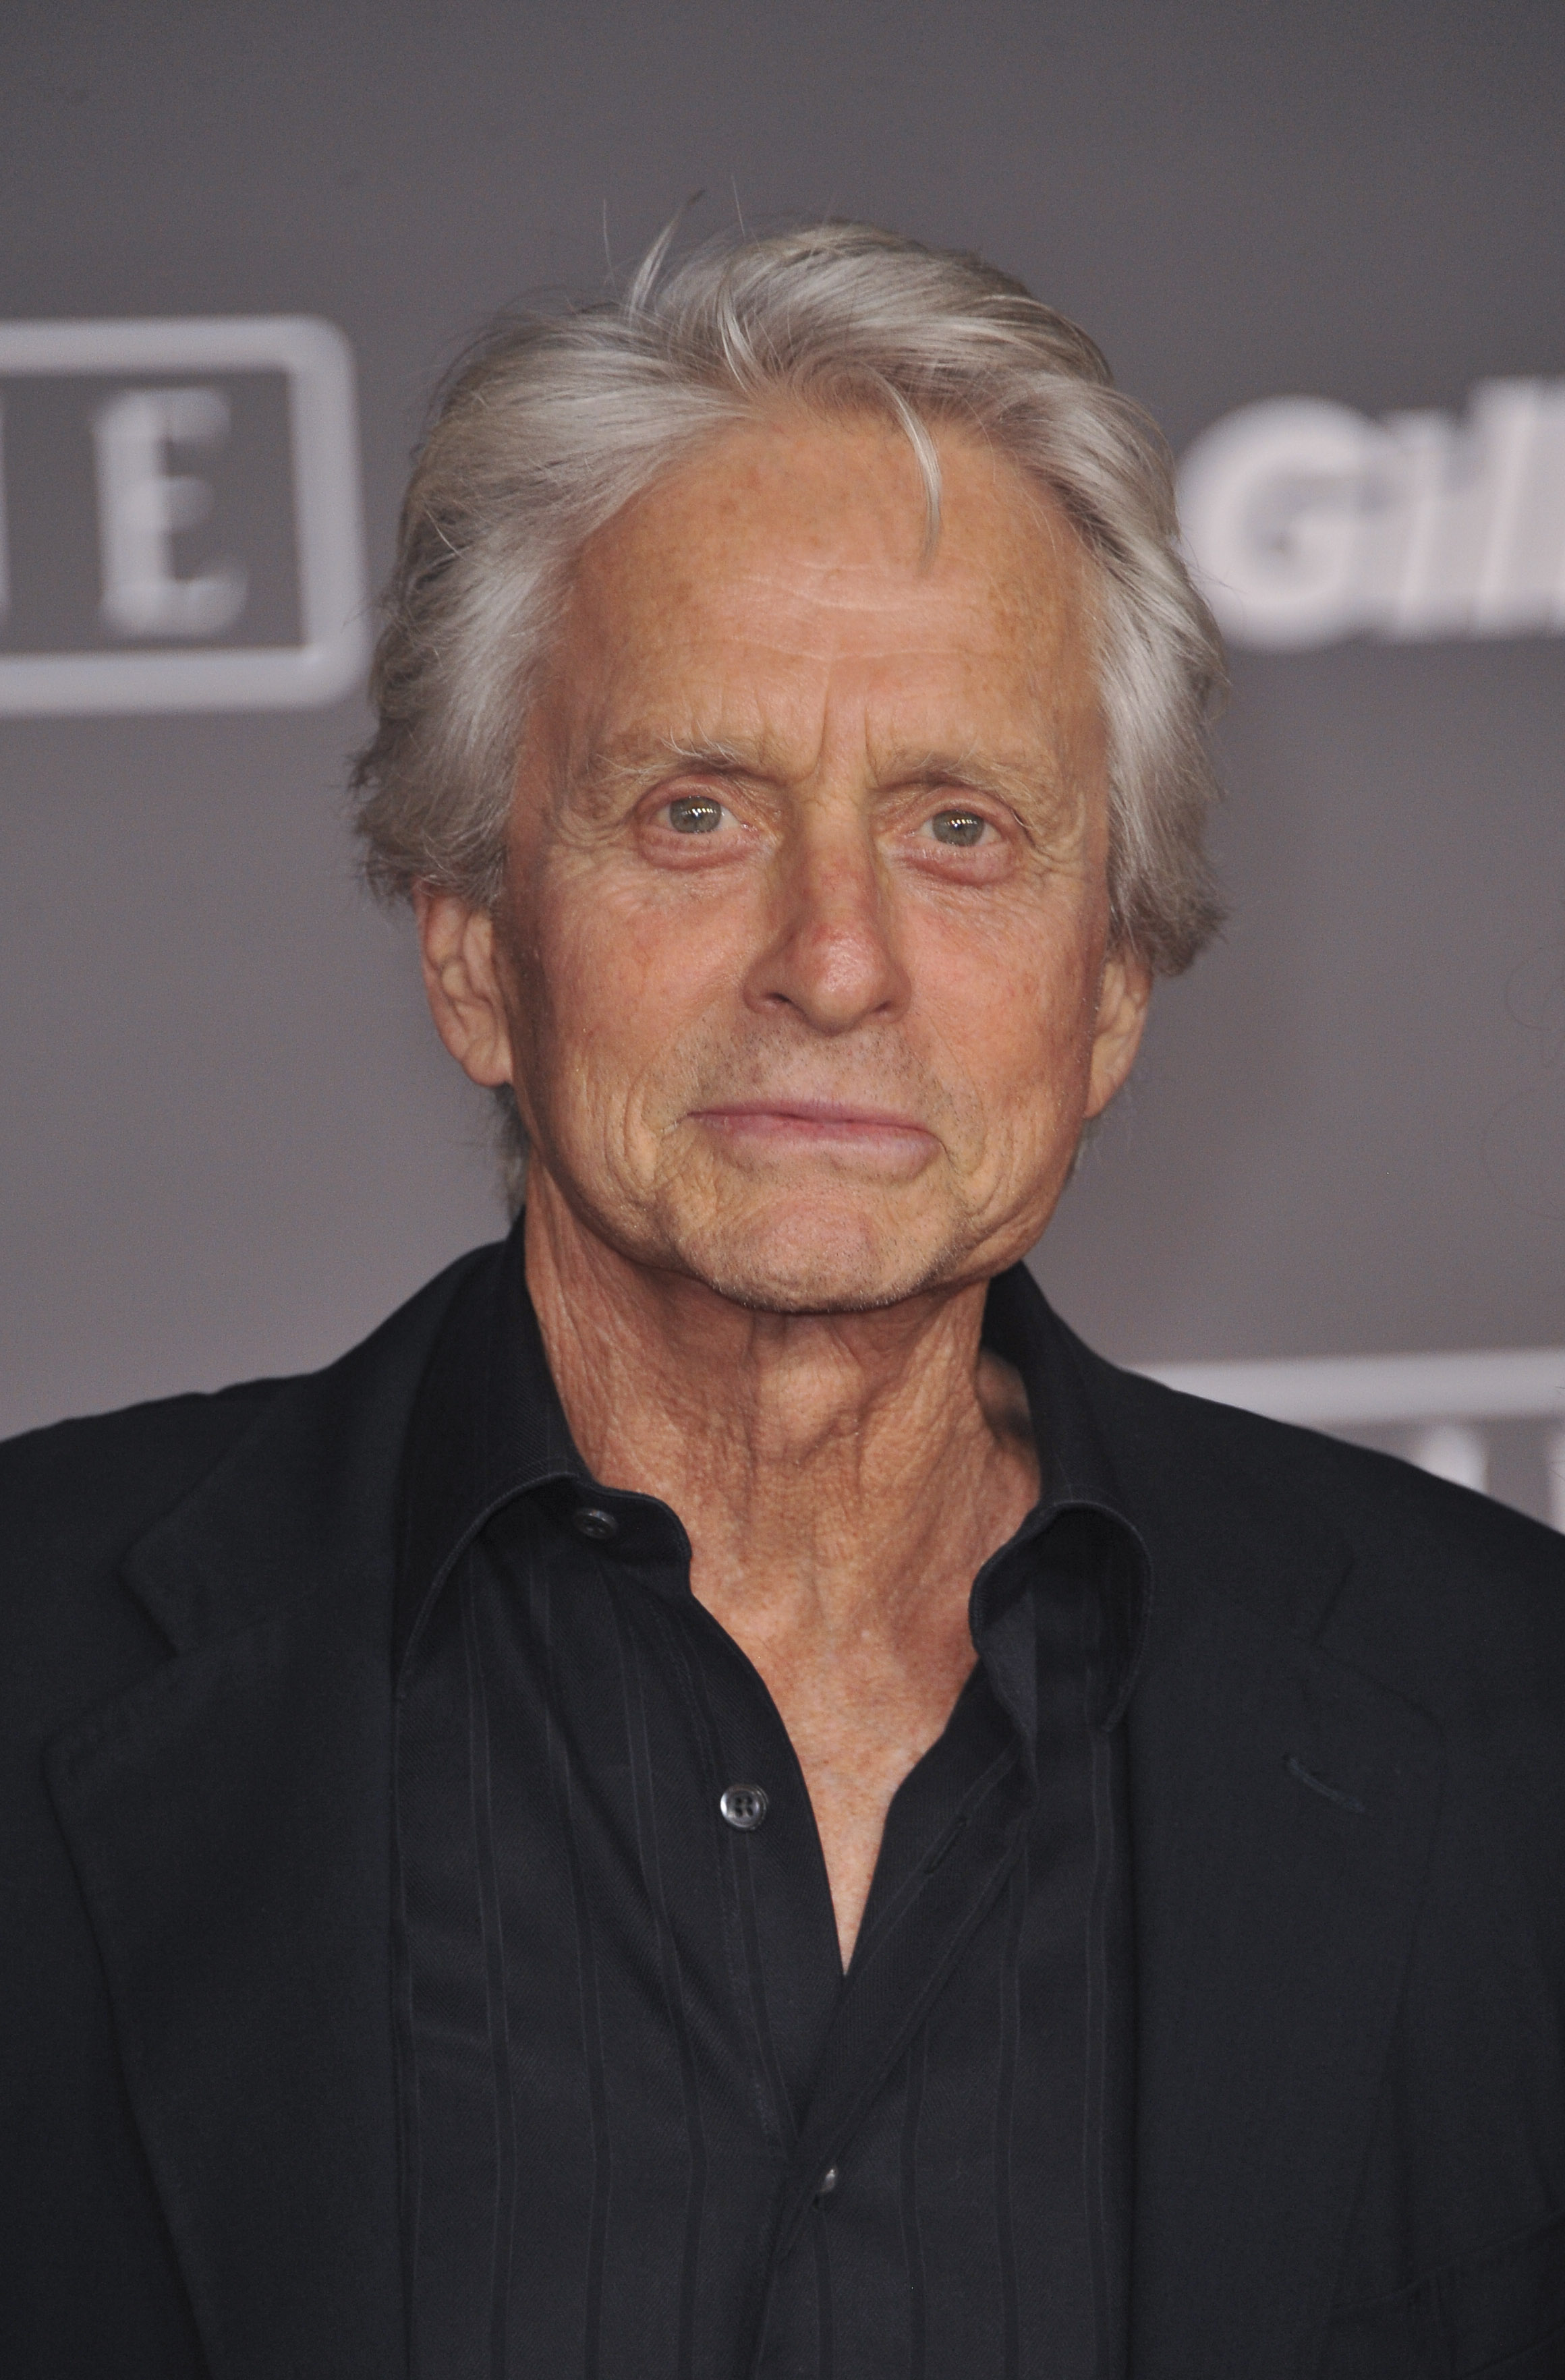 World premiere of 'Rogue One: A Star Wars Story' held at Pantages Theatre - Arrivals                                    Featuring: Michael Douglas                  Where: Los Angeles, California, United States                  When: 10 Dec 2016                  Credit: Apega/WENN.com